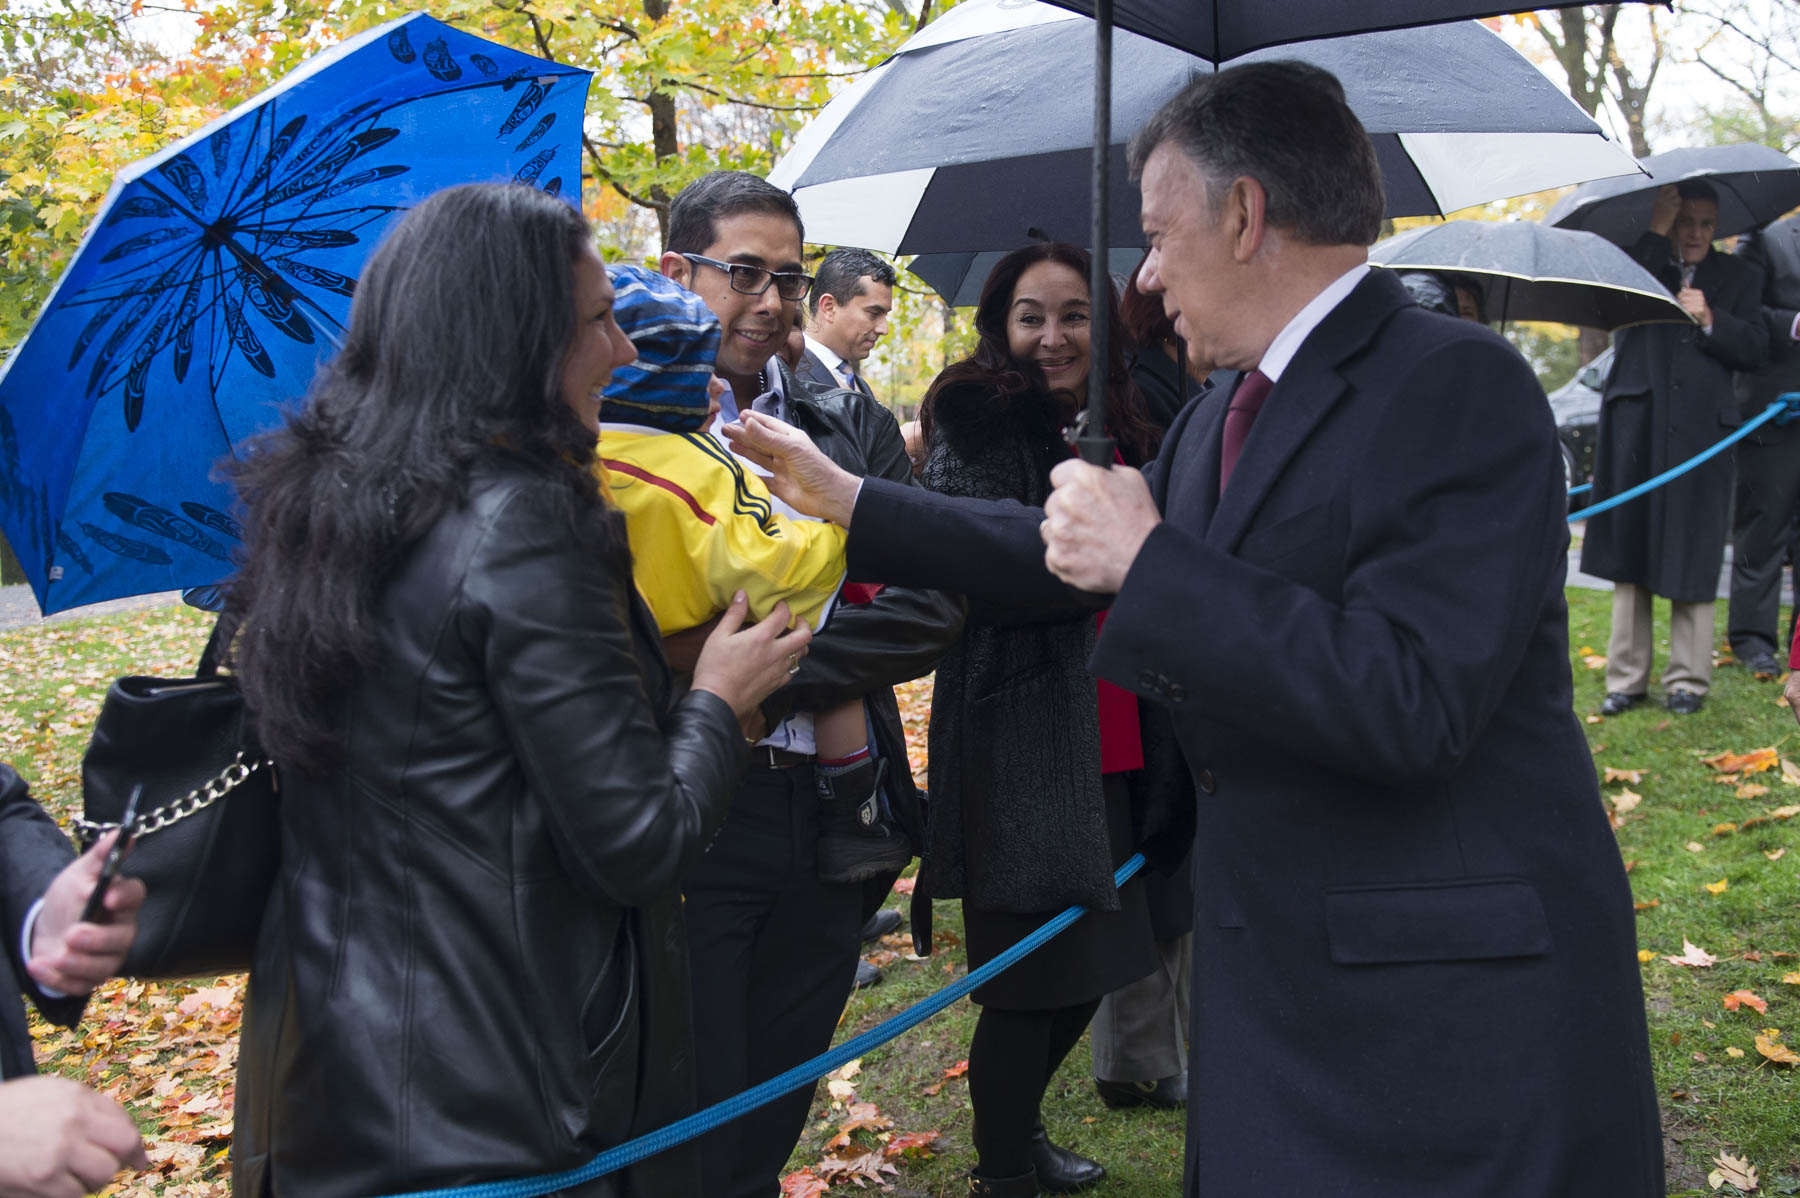 President Santos then met members of the Colombian community who were in attendance.